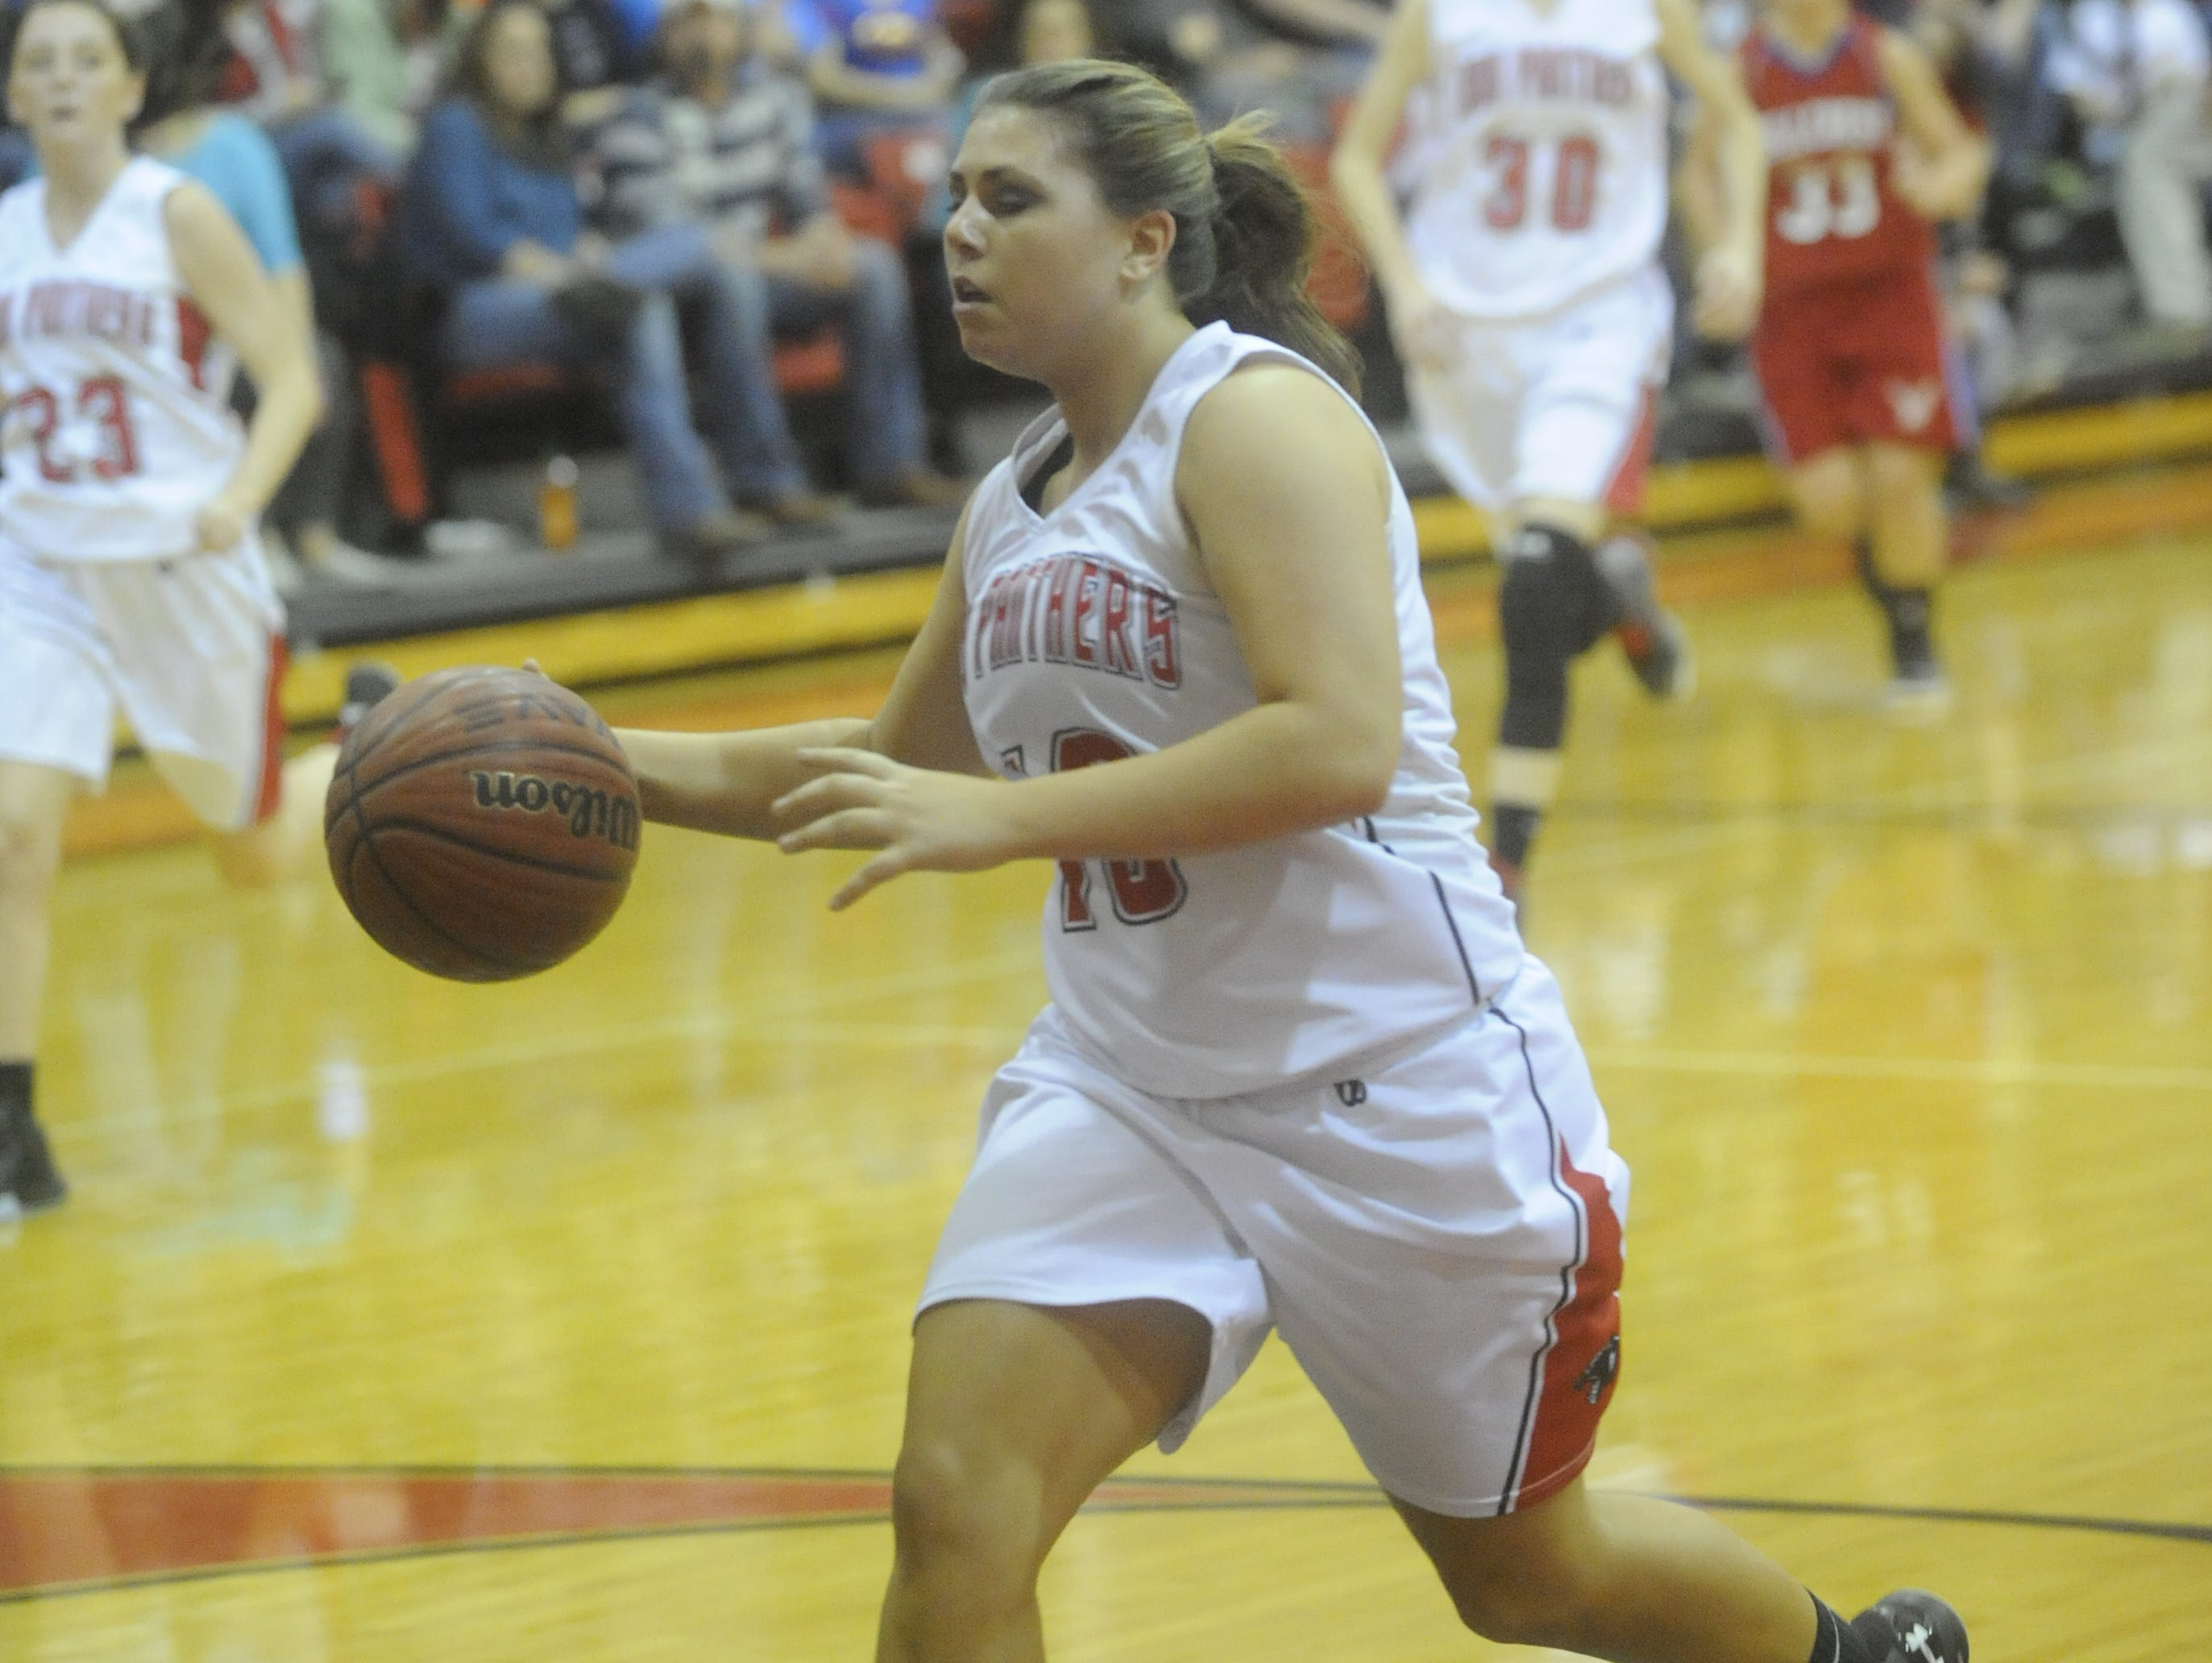 Norfork homecoming queen Abbie Belding drives the lane for two points during the Lady Panthers' 73-31 win over Hillcrest on Friday night.